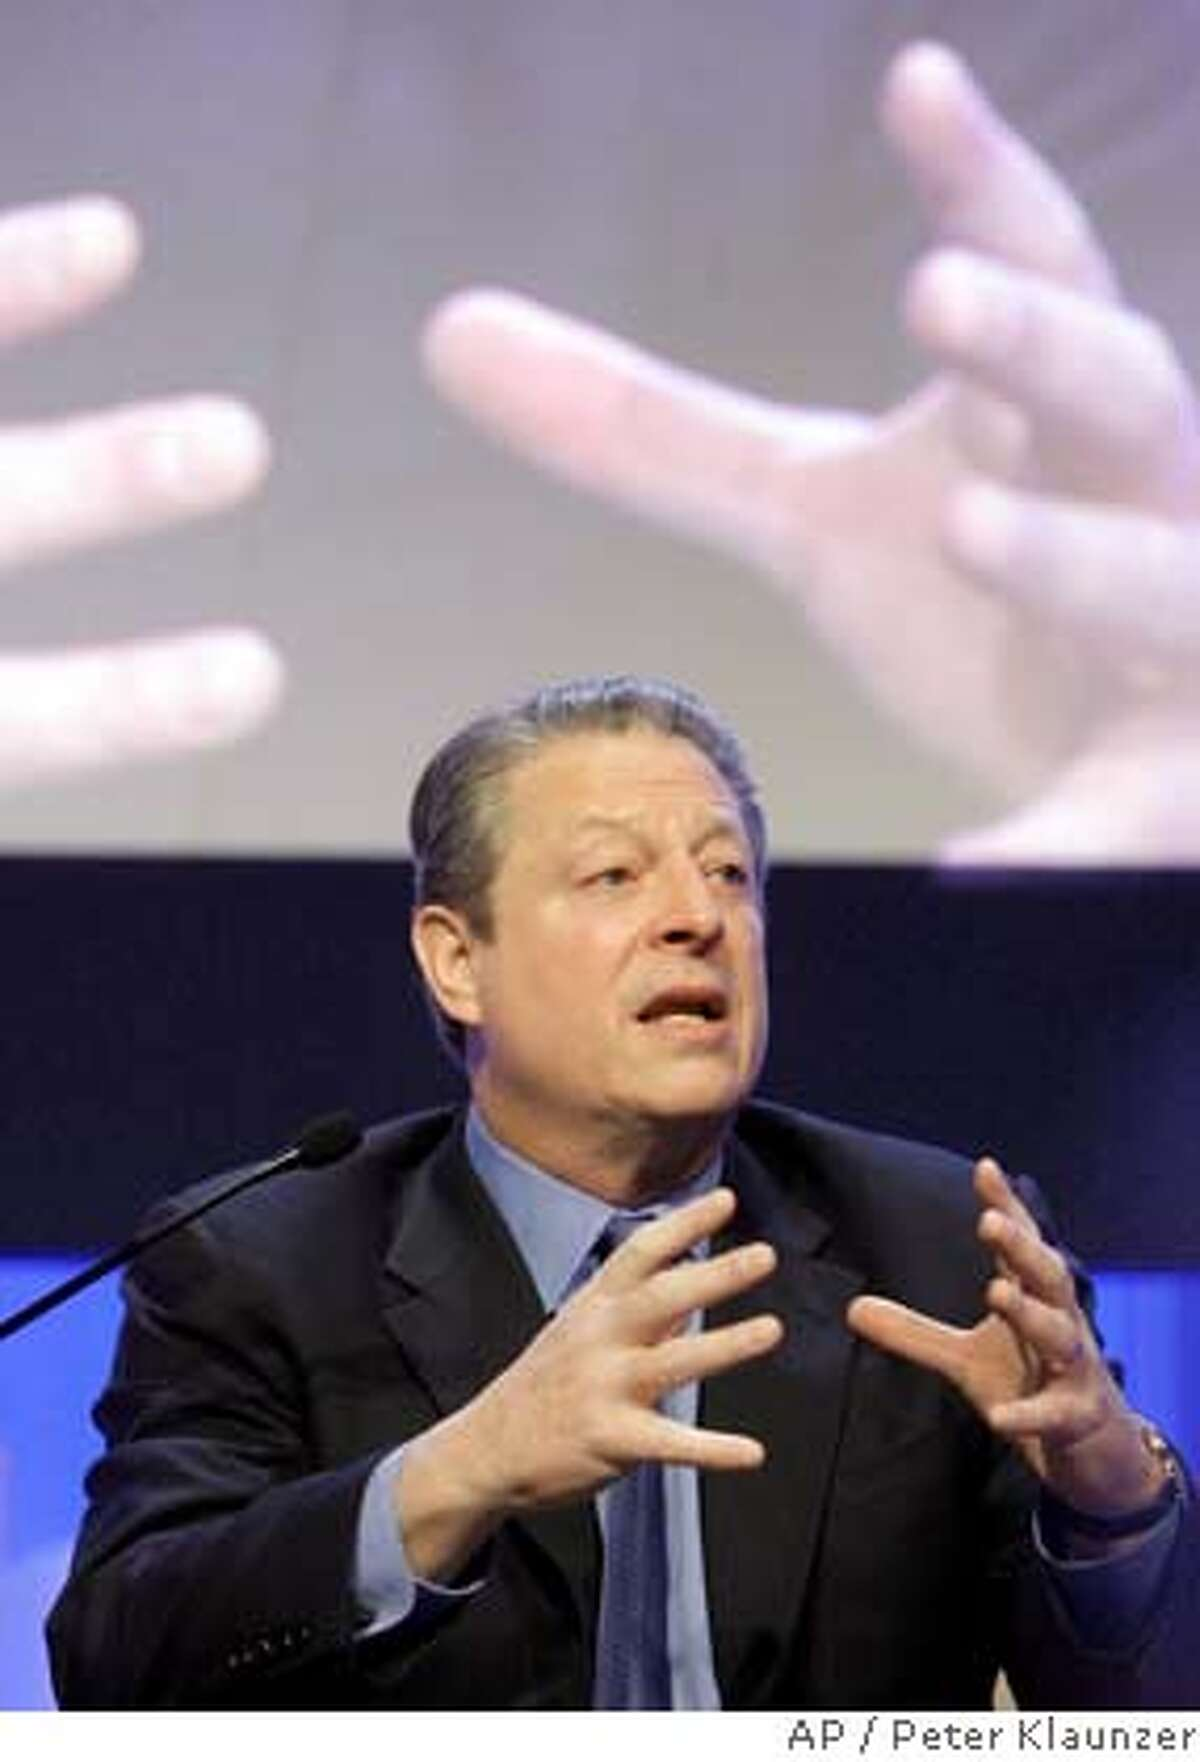 Former US-Vice President, Nobel Peace laureate Al Gore, speaks during a plenary session on the second day of the Annual Meeting of the World Economic Forum, WEF, in Davos, Switzerland, Thursday, Jan 24, 2008. Top business leaders, heads of state from around the world as well as representatives of NGOs will gather here until Sunday, Jan. 27. (AP Photo/Keystone, Peter Klaunzer)